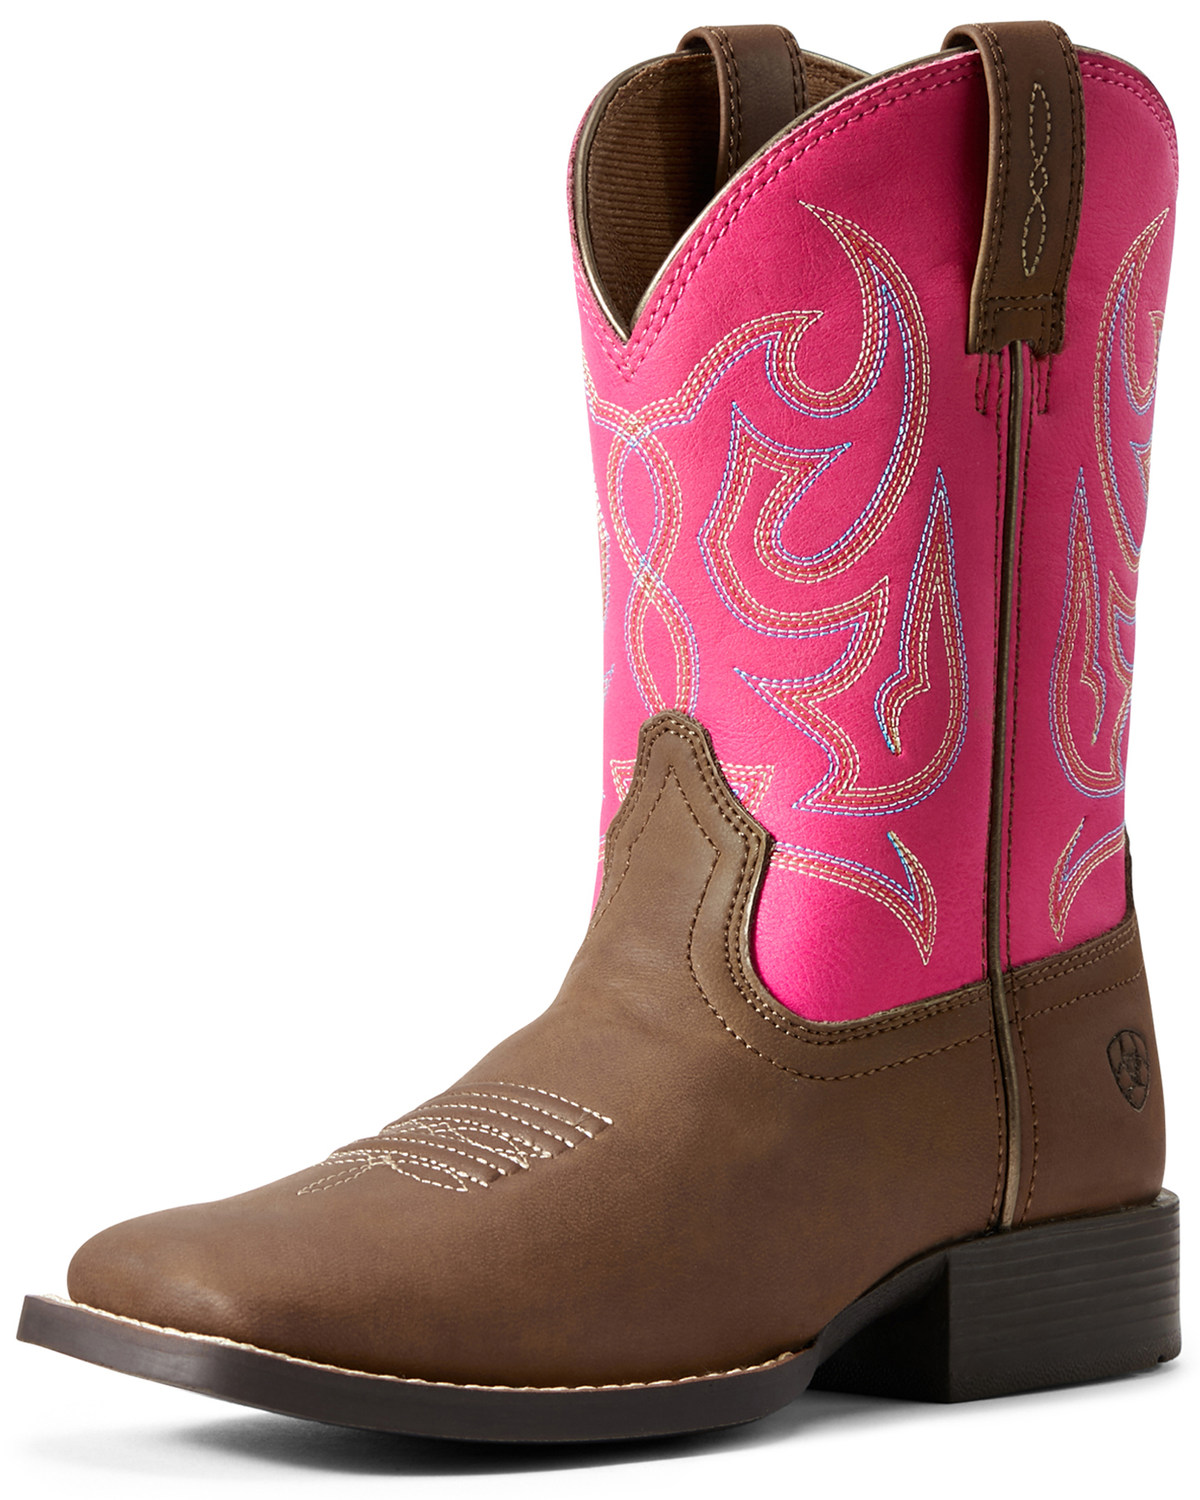 wide boots for girls